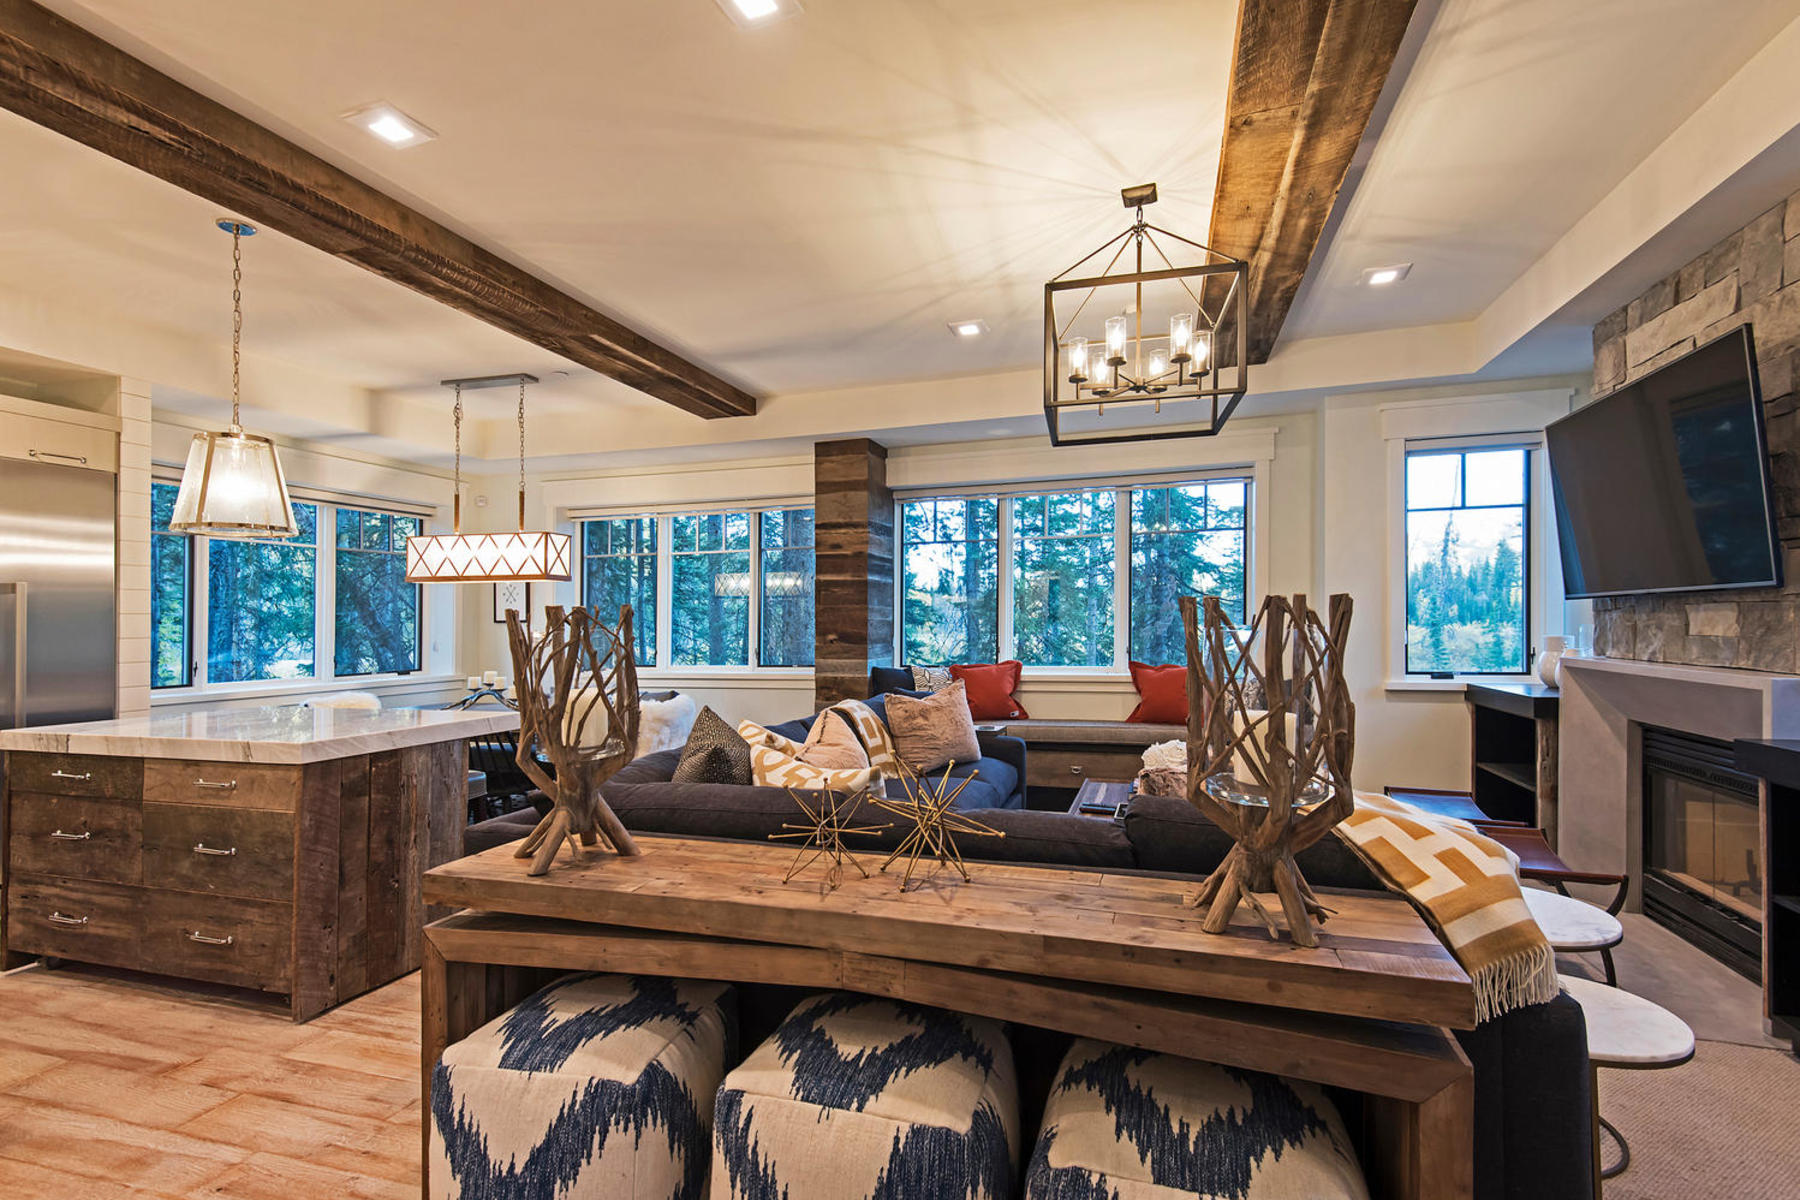 Additional photo for property listing at Mountain Contemporary Dream Home 12406 E Willow Loop Rd Brighton, Utah 84121 United States